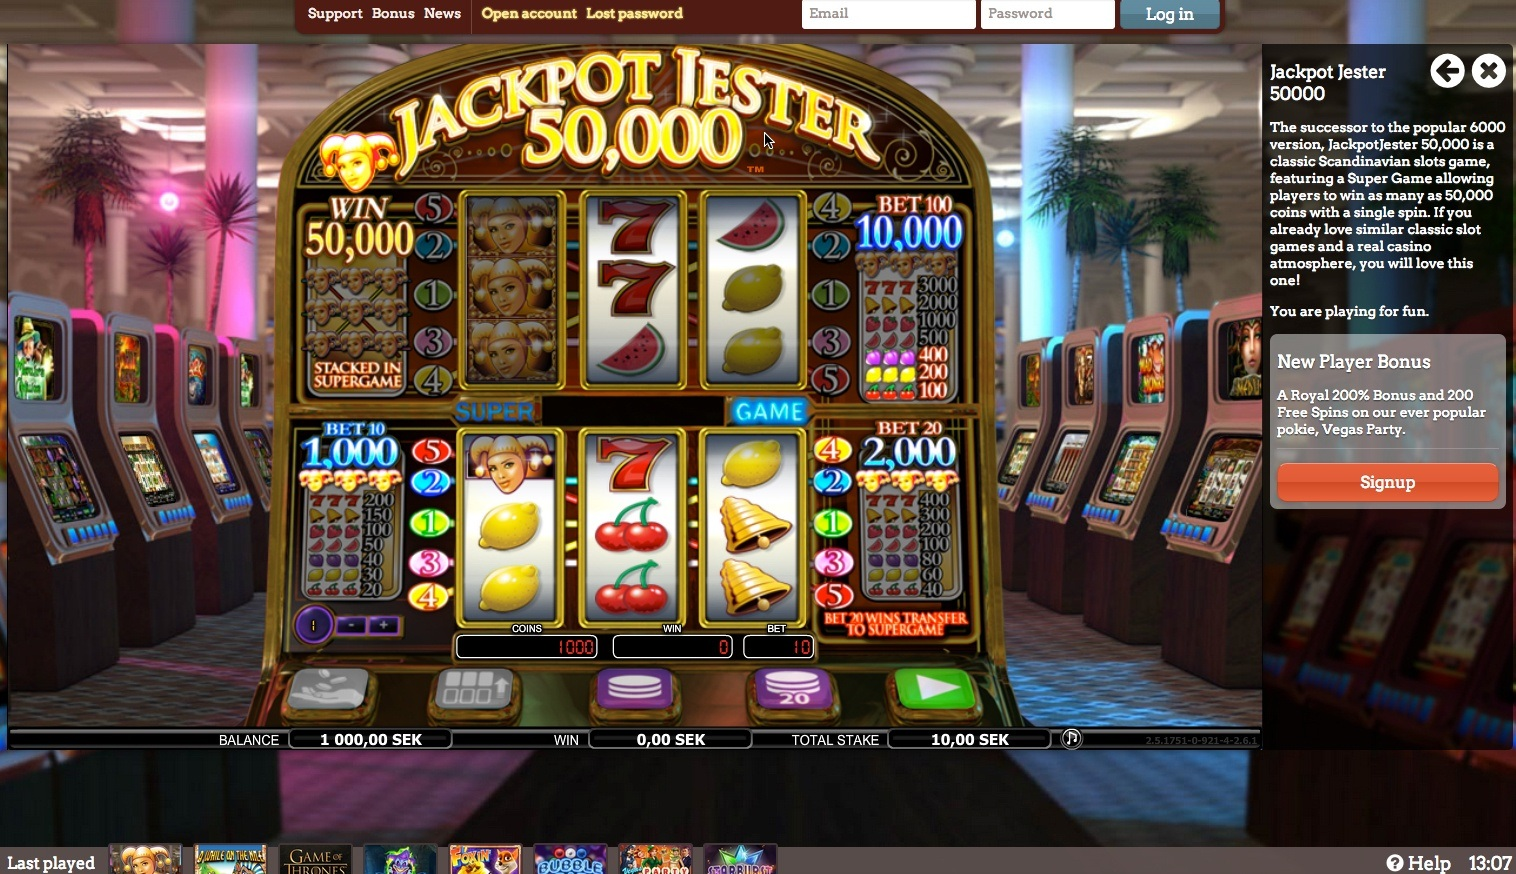 Casino PlayersOnly Review at PlayersOnly Casino Reveiw